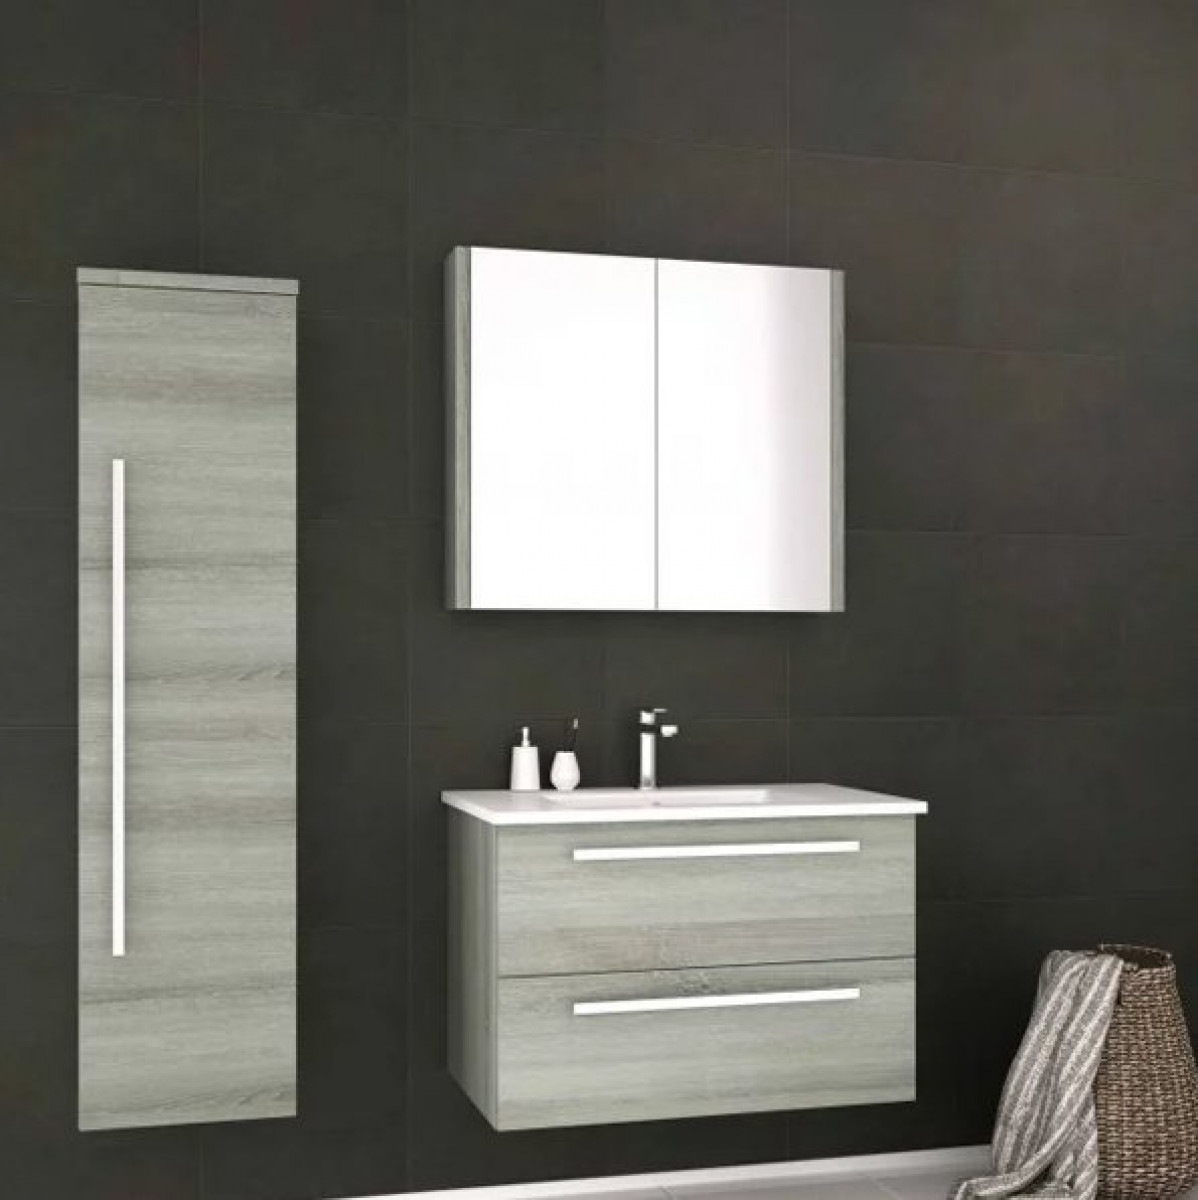 Rogerseller Fold Single 750 Heated Towel Rails: Kartell Purity 750mm Wall Mounted Drawer Unit & Basin